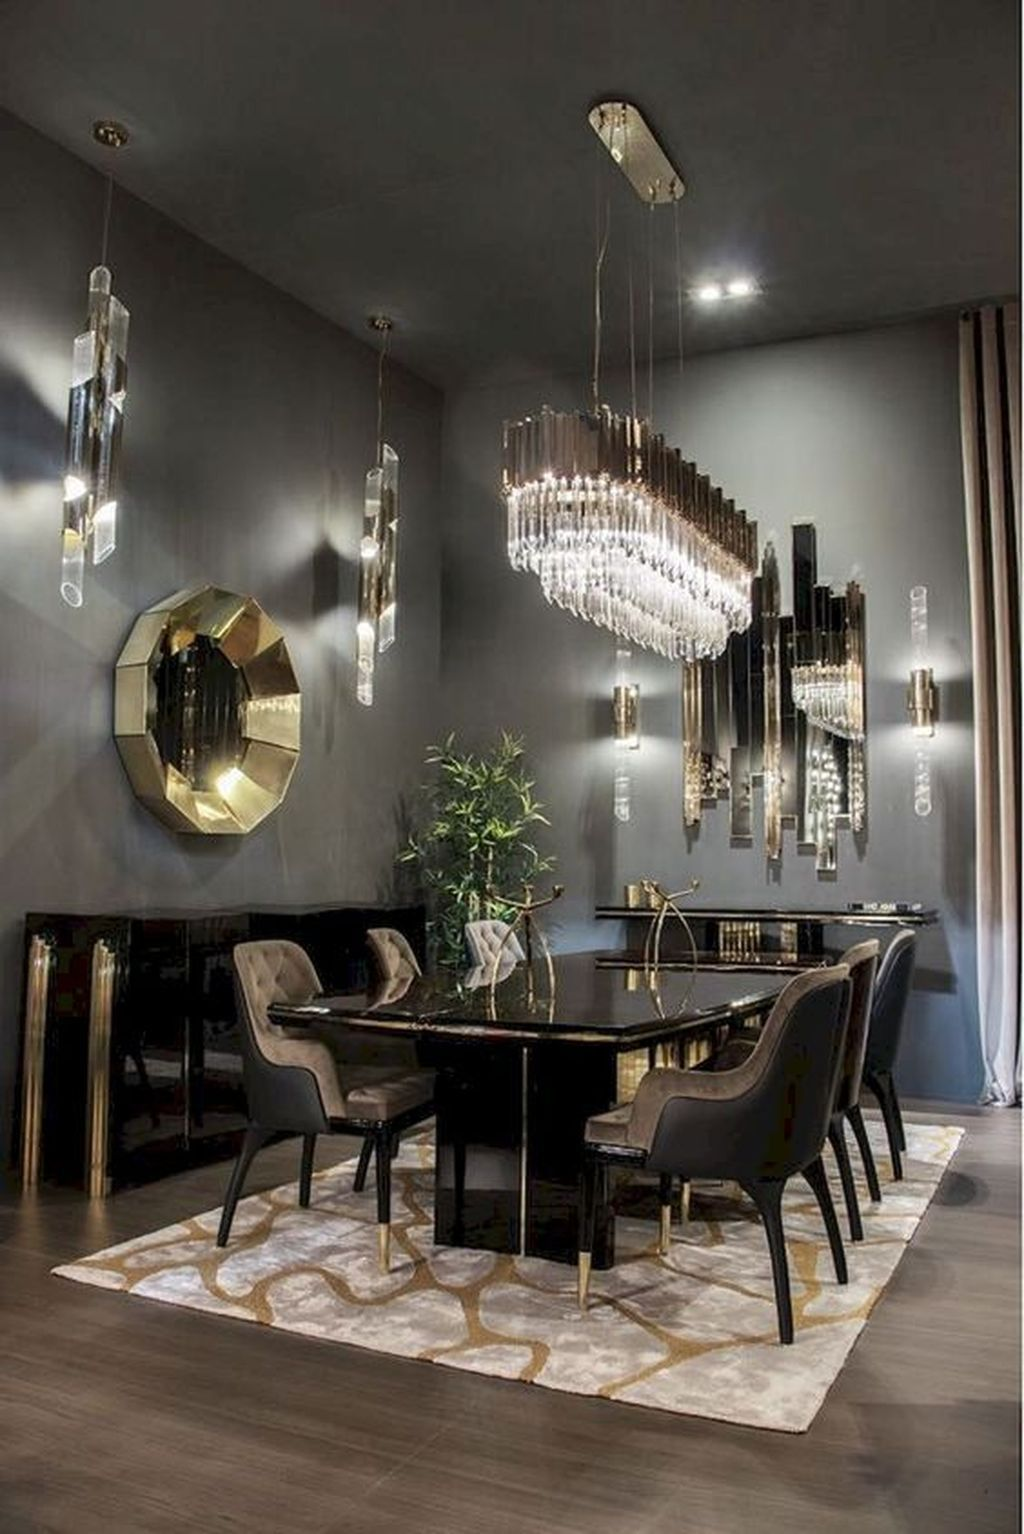 32 Fabulous Contemporary Dining Room Decorating Ideas Homyhomee Contemporary Dining Room Design Luxury Dining Tables Luxury Dining Room